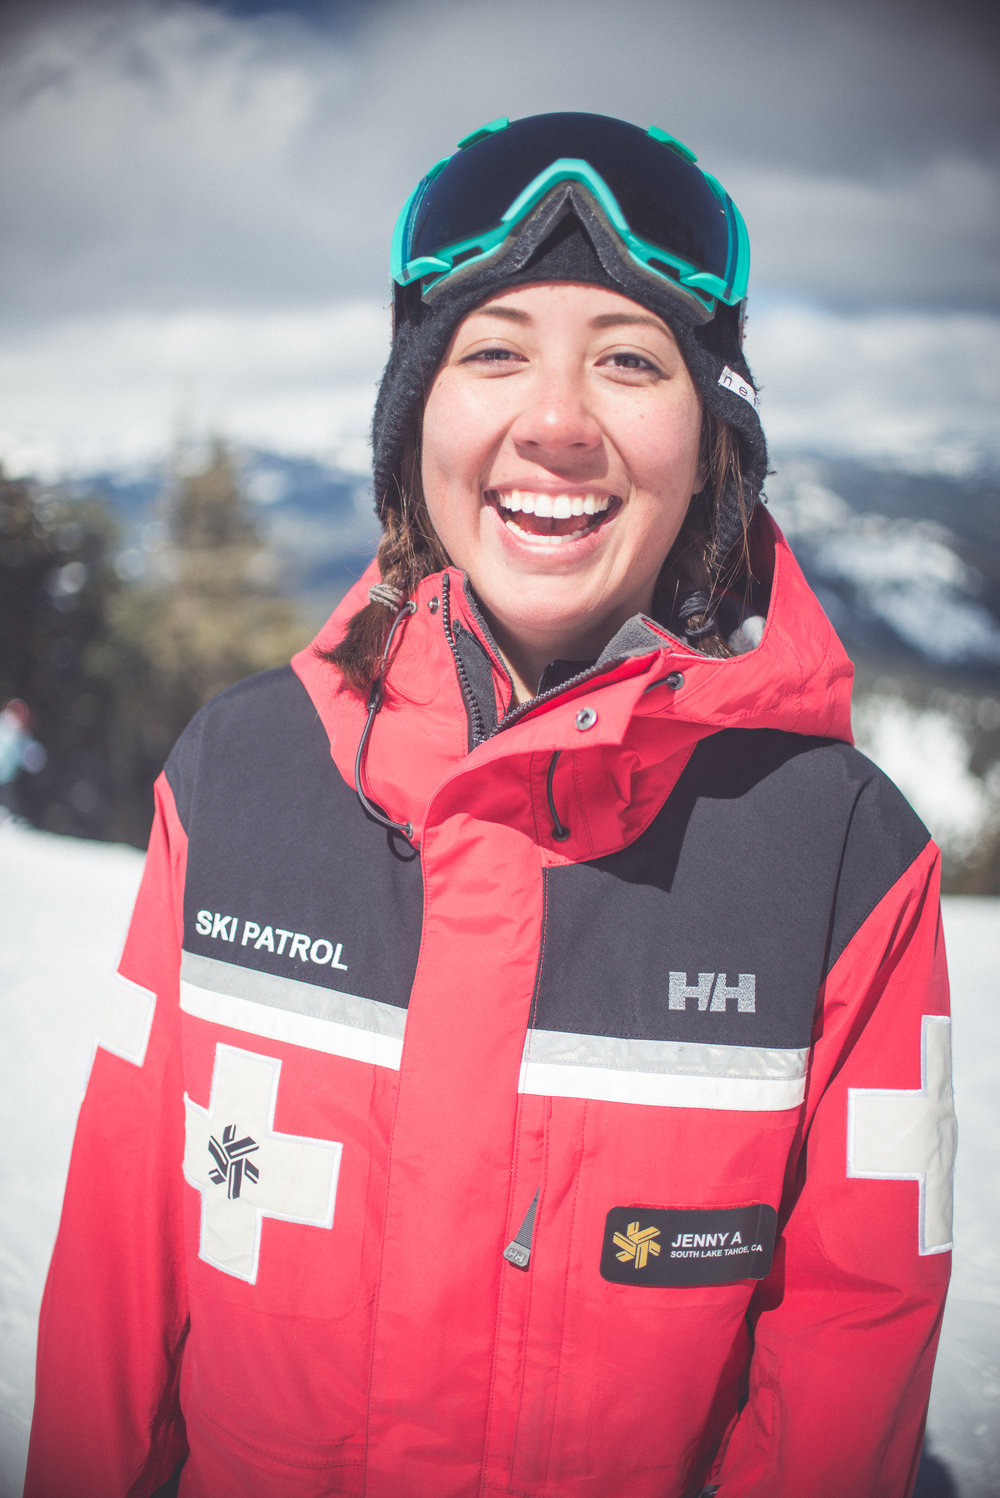 What would be your advice to other women who aspire to becoming ski patrollers? - My advice would be to just go for it and not let anything stop you. You are fully capable of this job and nothing should get in the way of your goals in life. You just have to work hard, show your worth and be confident.